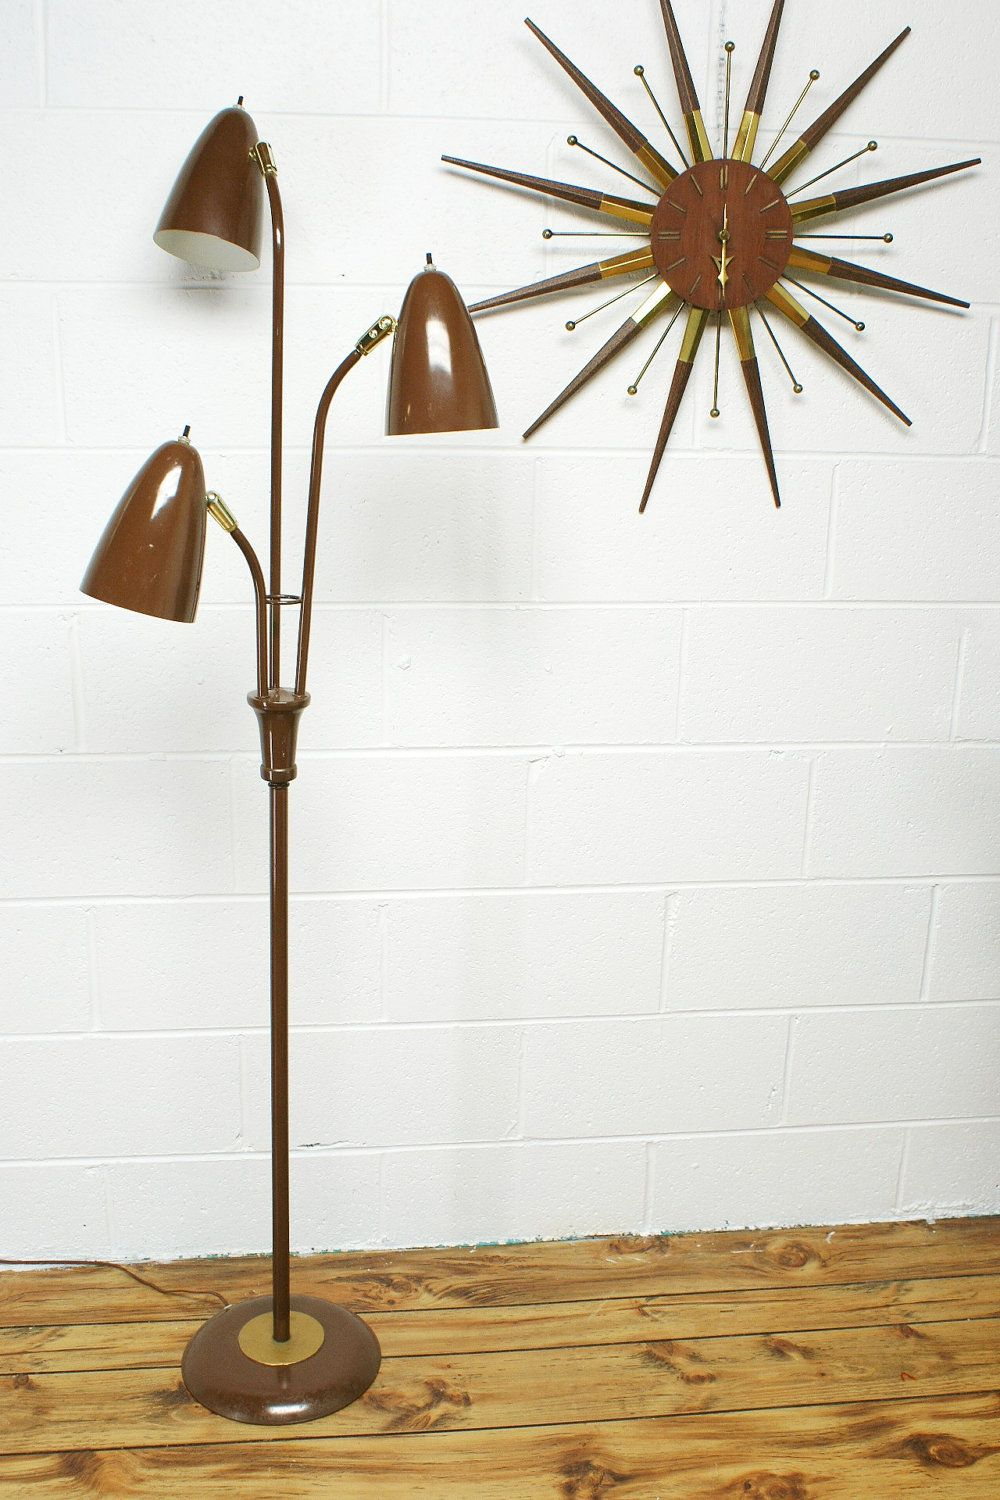 The Vintage Mid Century Modern Floor Lamp With 3 Lights Ha How Many Clocks Do We Hav Mid Century Lamp Mid Century Modern Floor Lamps Mid Century Furnishings